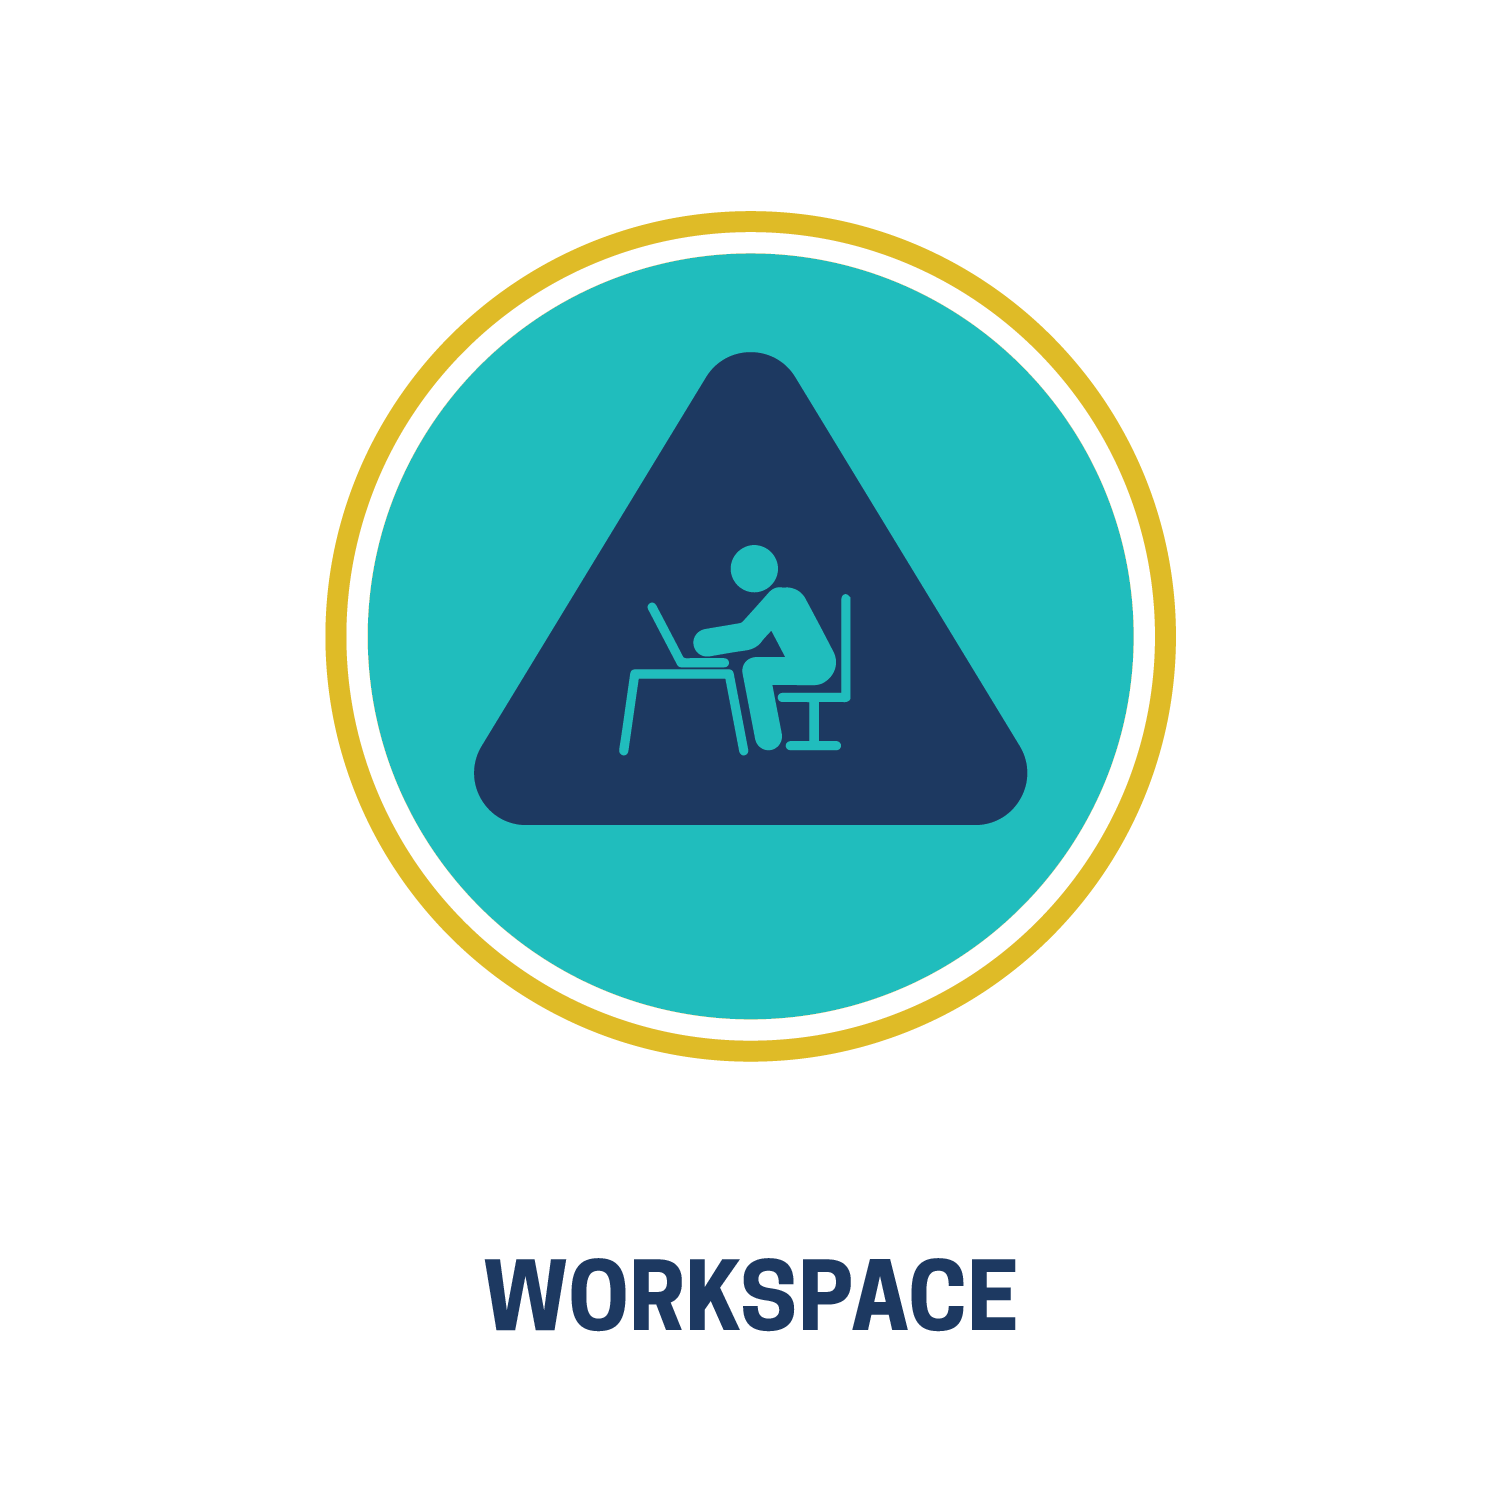 Icons_Workspace.png